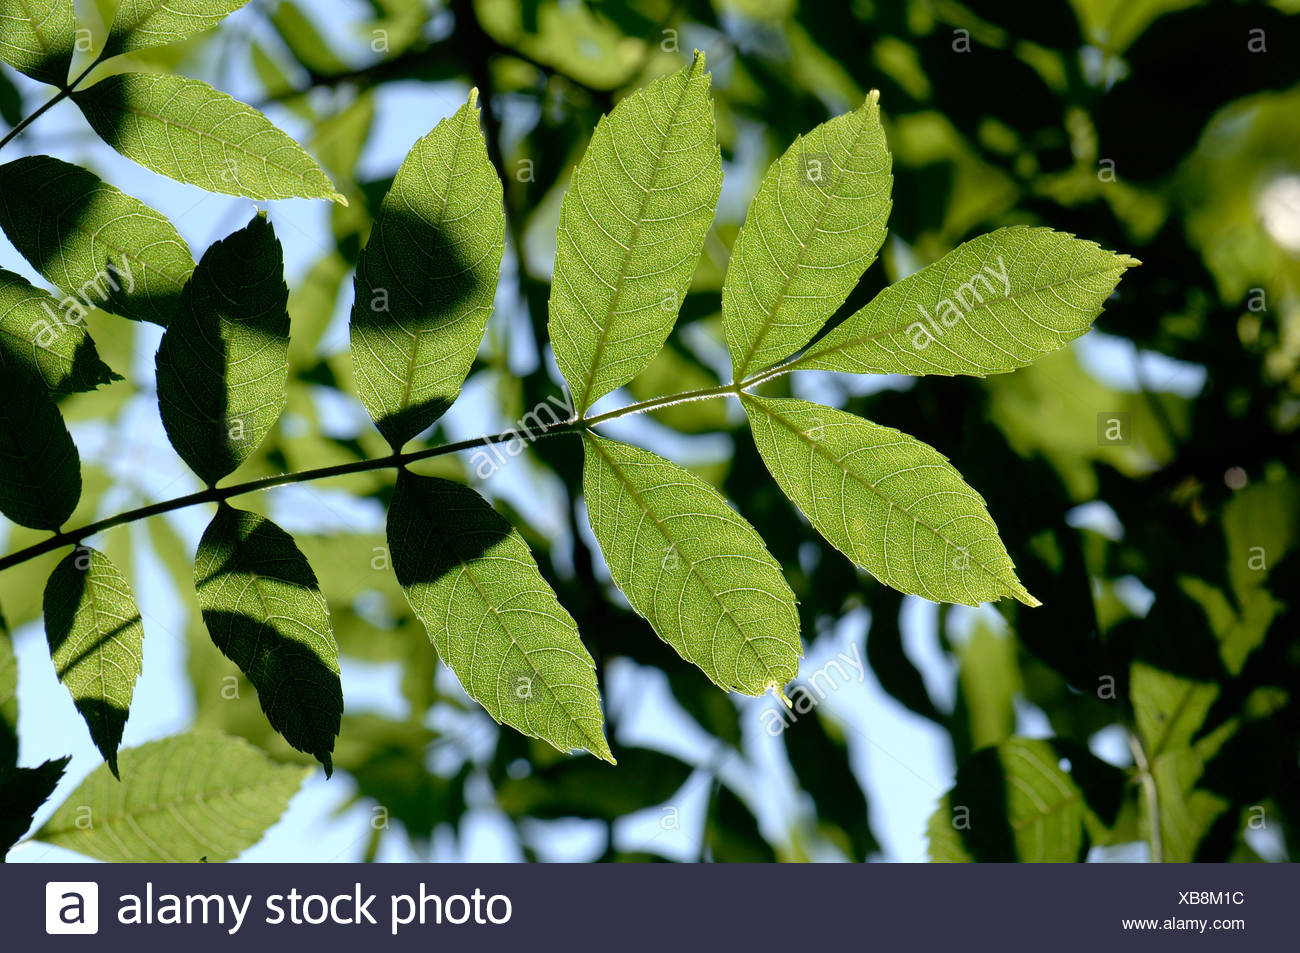 Young leaves of ash Fraxinus excelsior backlit by sunlight - Stock Image